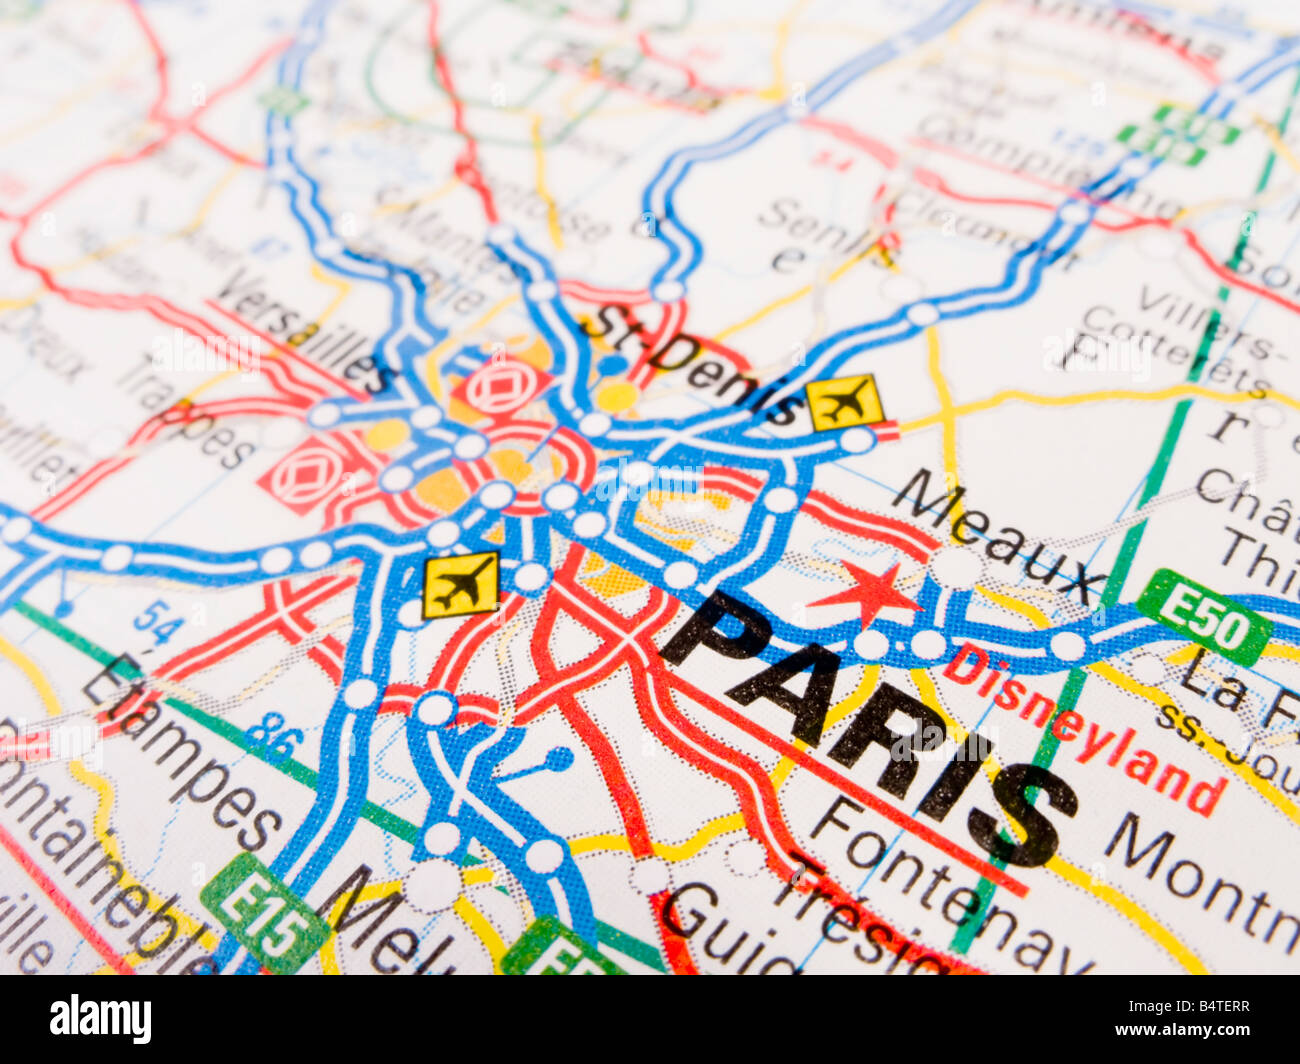 close up of a road map of paris